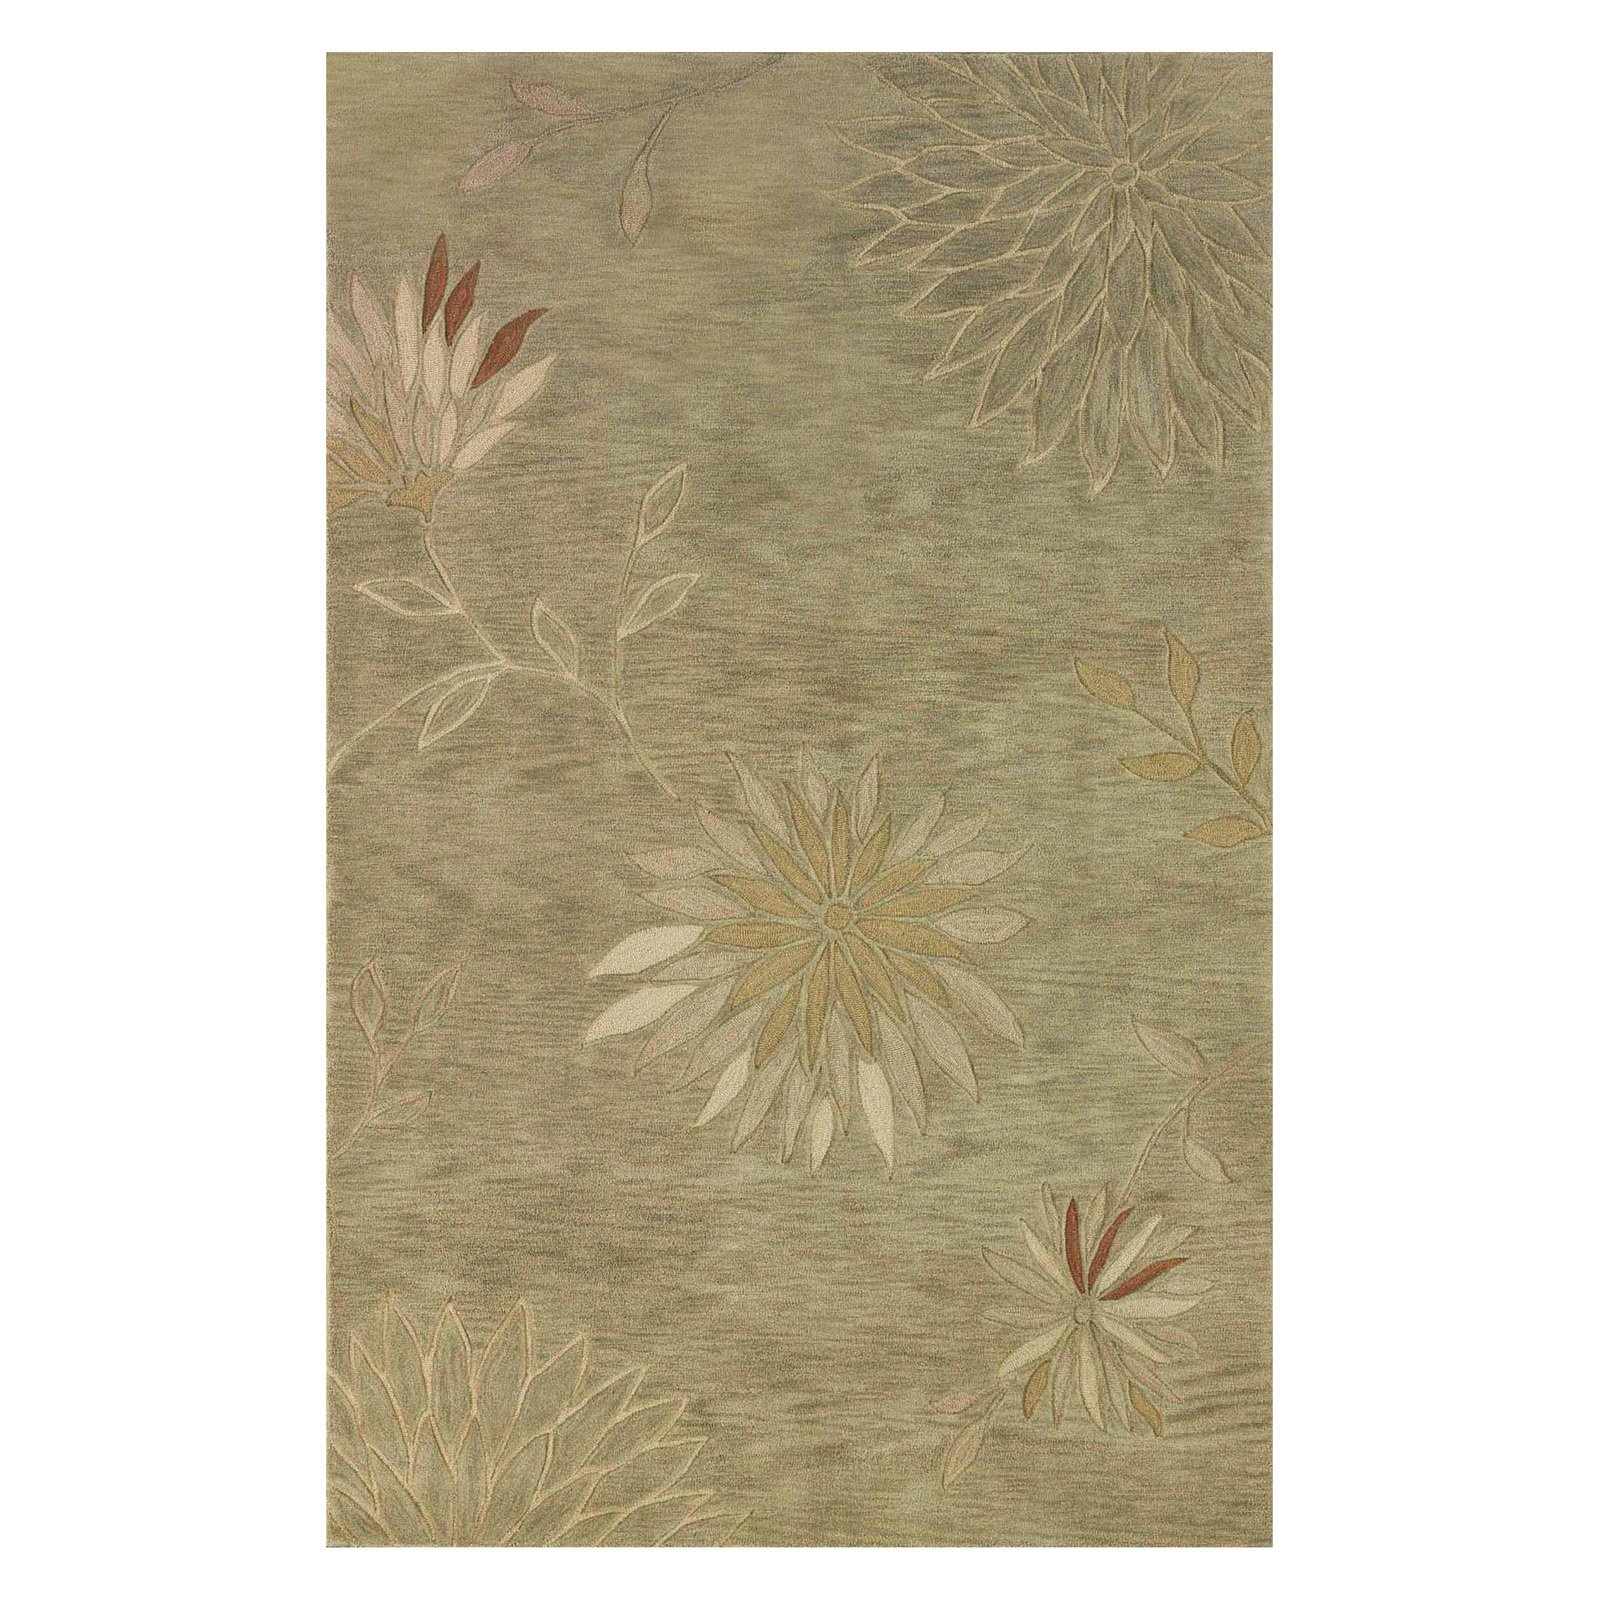 Dalyn Studio SD301 Indoor Area Rug